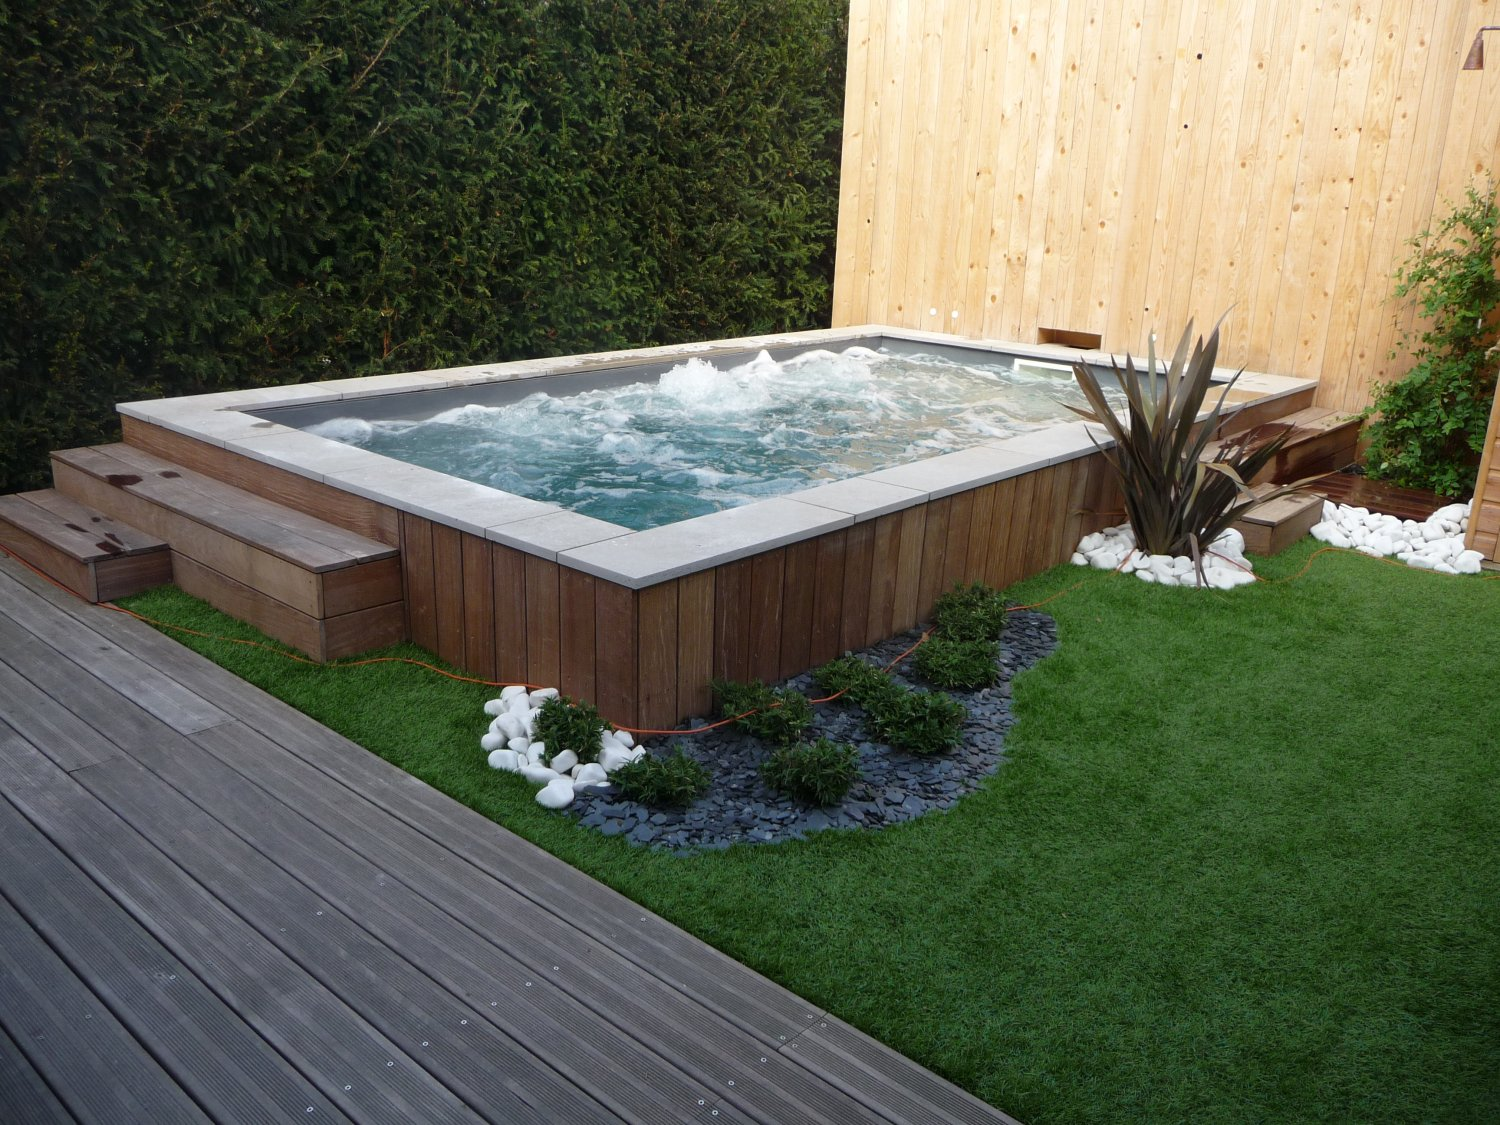 Am nager son jardin ext rieur faire une terrasse en bois for Amenagement jardin piscine